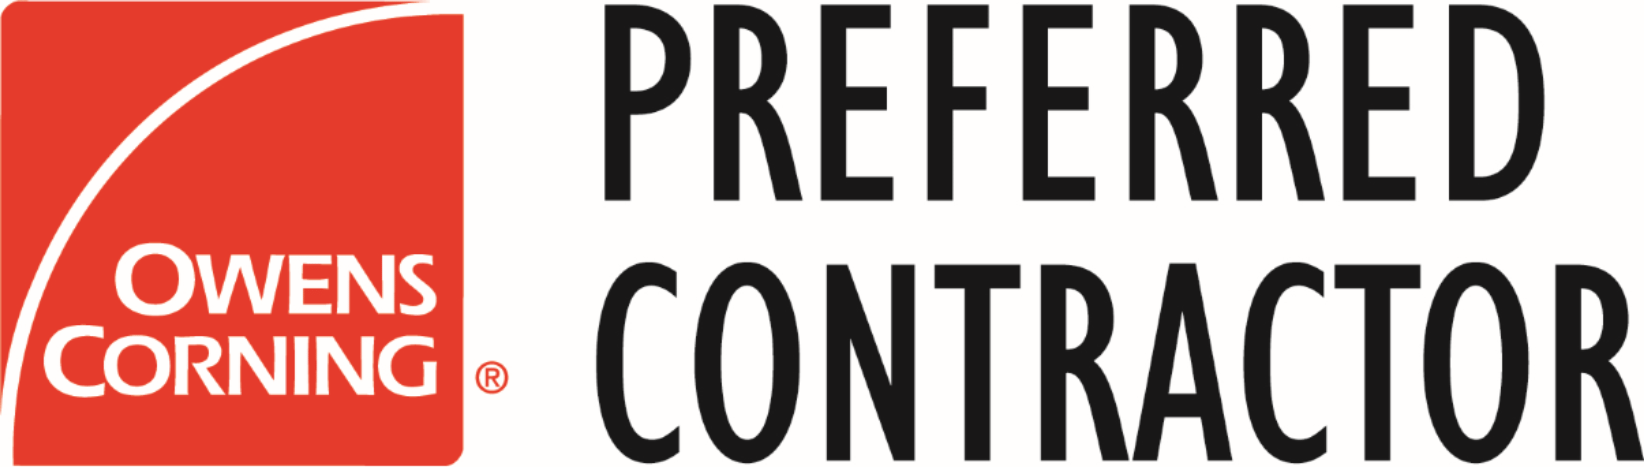 Owens Corning Preferred Contractor Logo